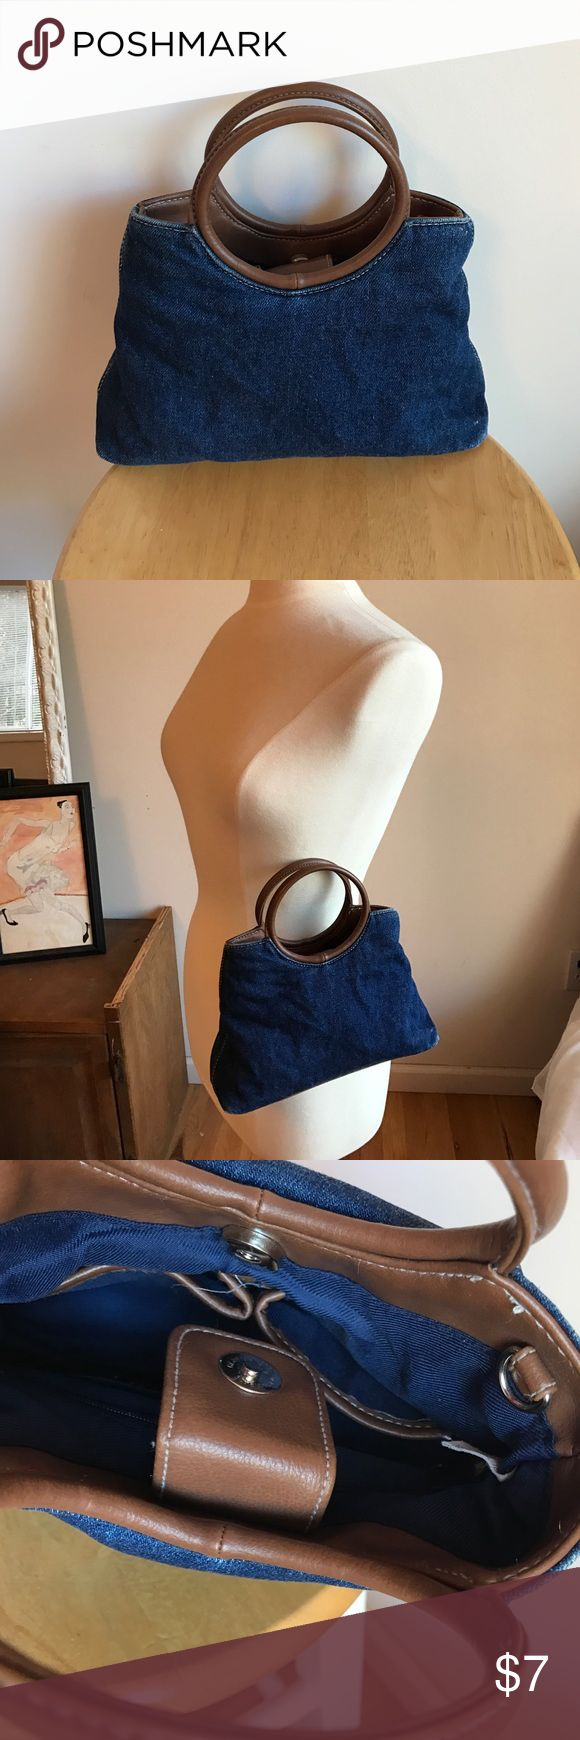 Small Denim Handbag This small denim handbag measures 10 x 6 x 2.5. It has two pockets and one zipper pocket inside. Magnetic closure and loops for attaching a longer strap. Faux leather details. no brand Bags Mini Bags